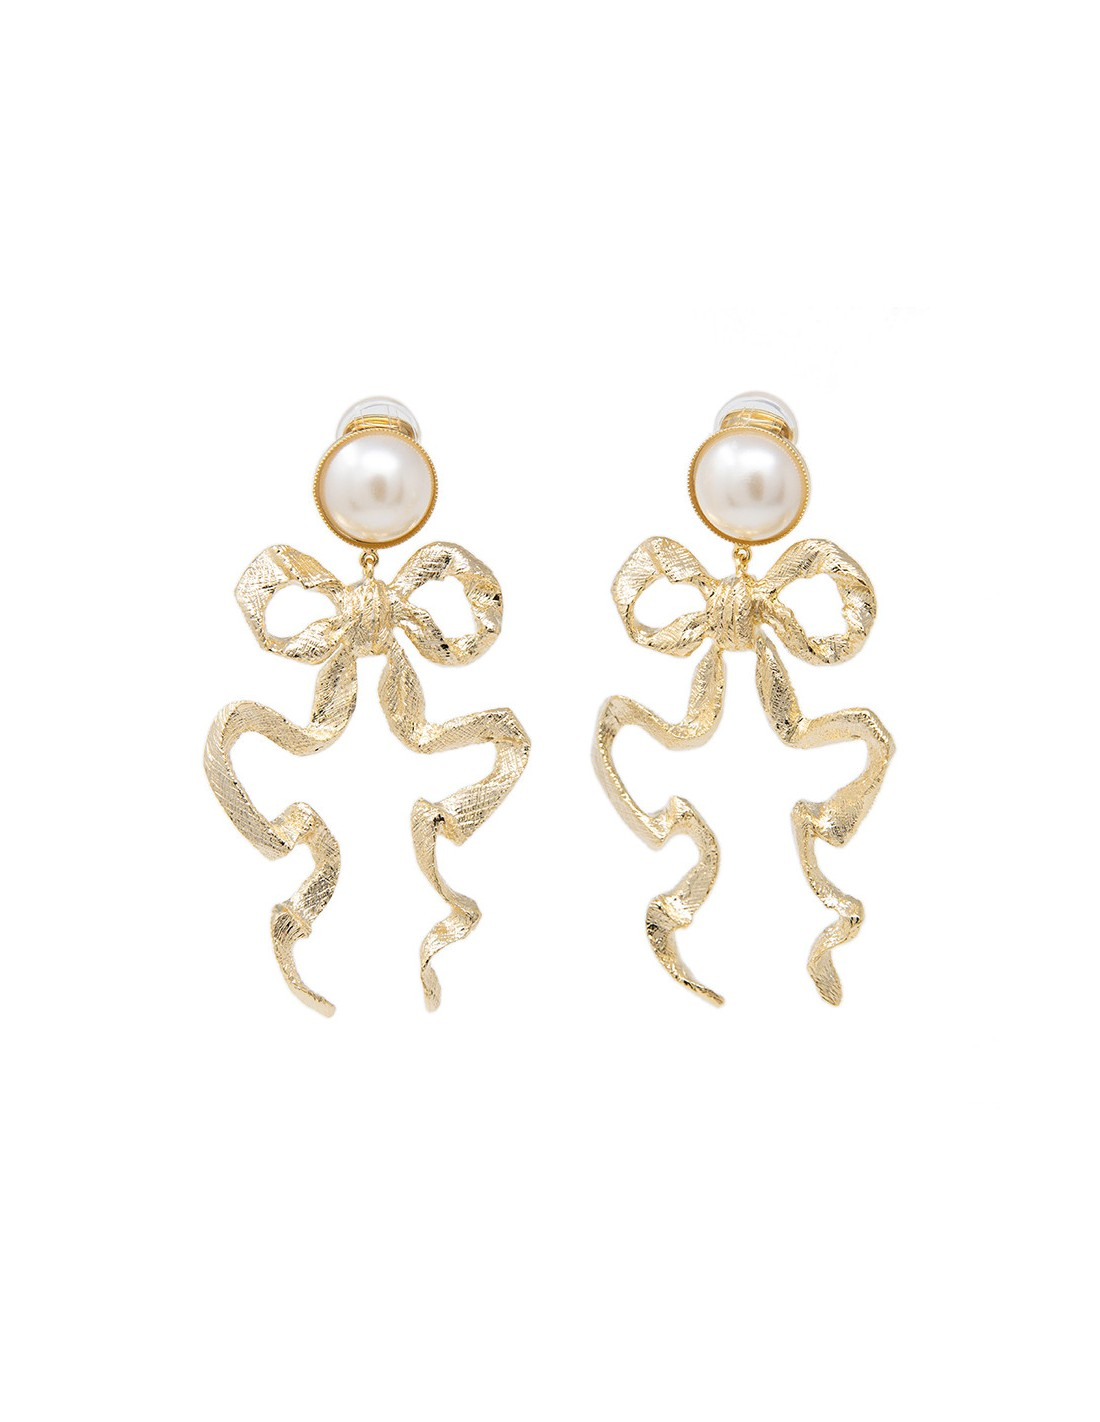 Luxury Impressive Chic And Elegant Statement Fashion Earrings